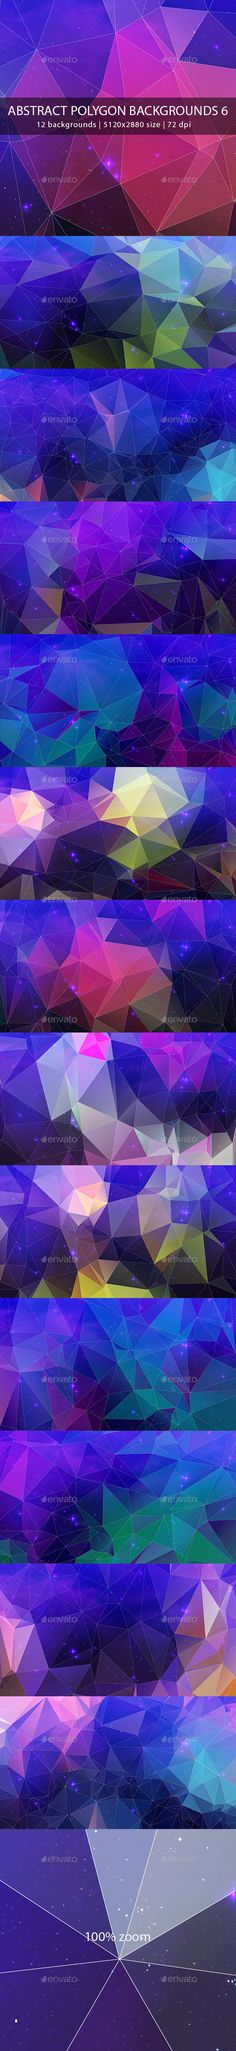 Abstract Polygon Backgrounds 6